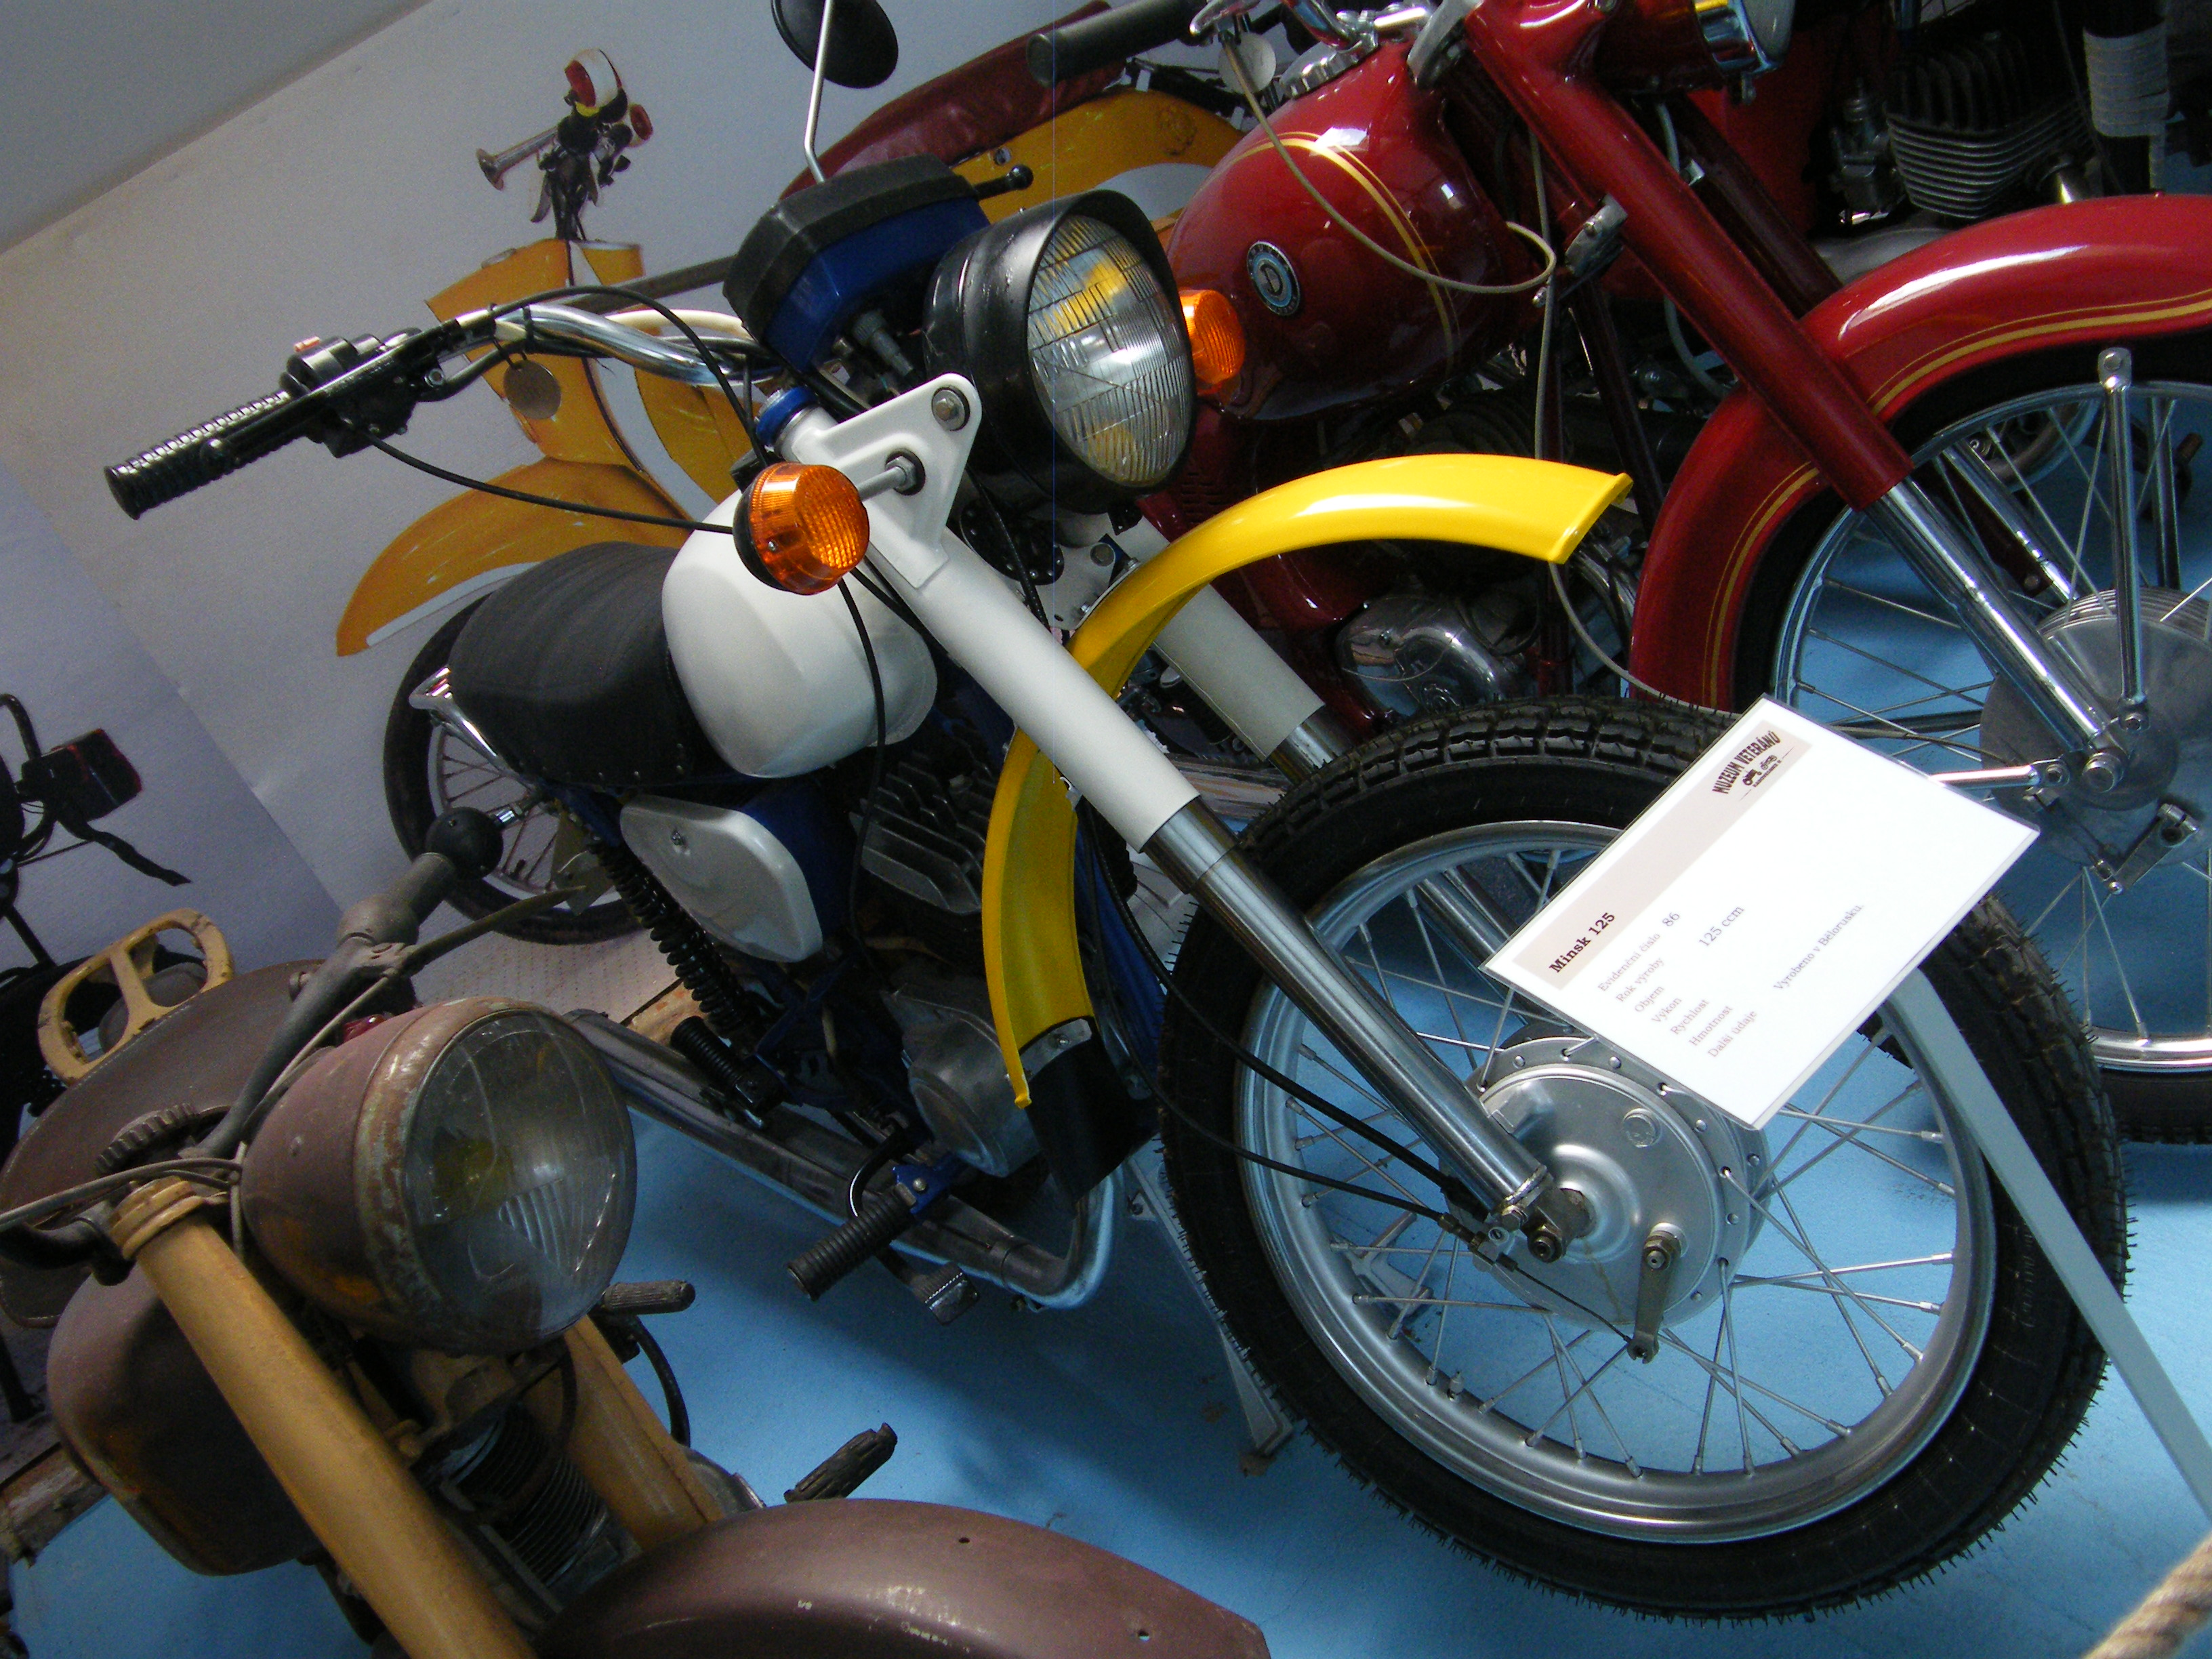 Motorcycle Minsk: technical characteristics and success in the international market 73